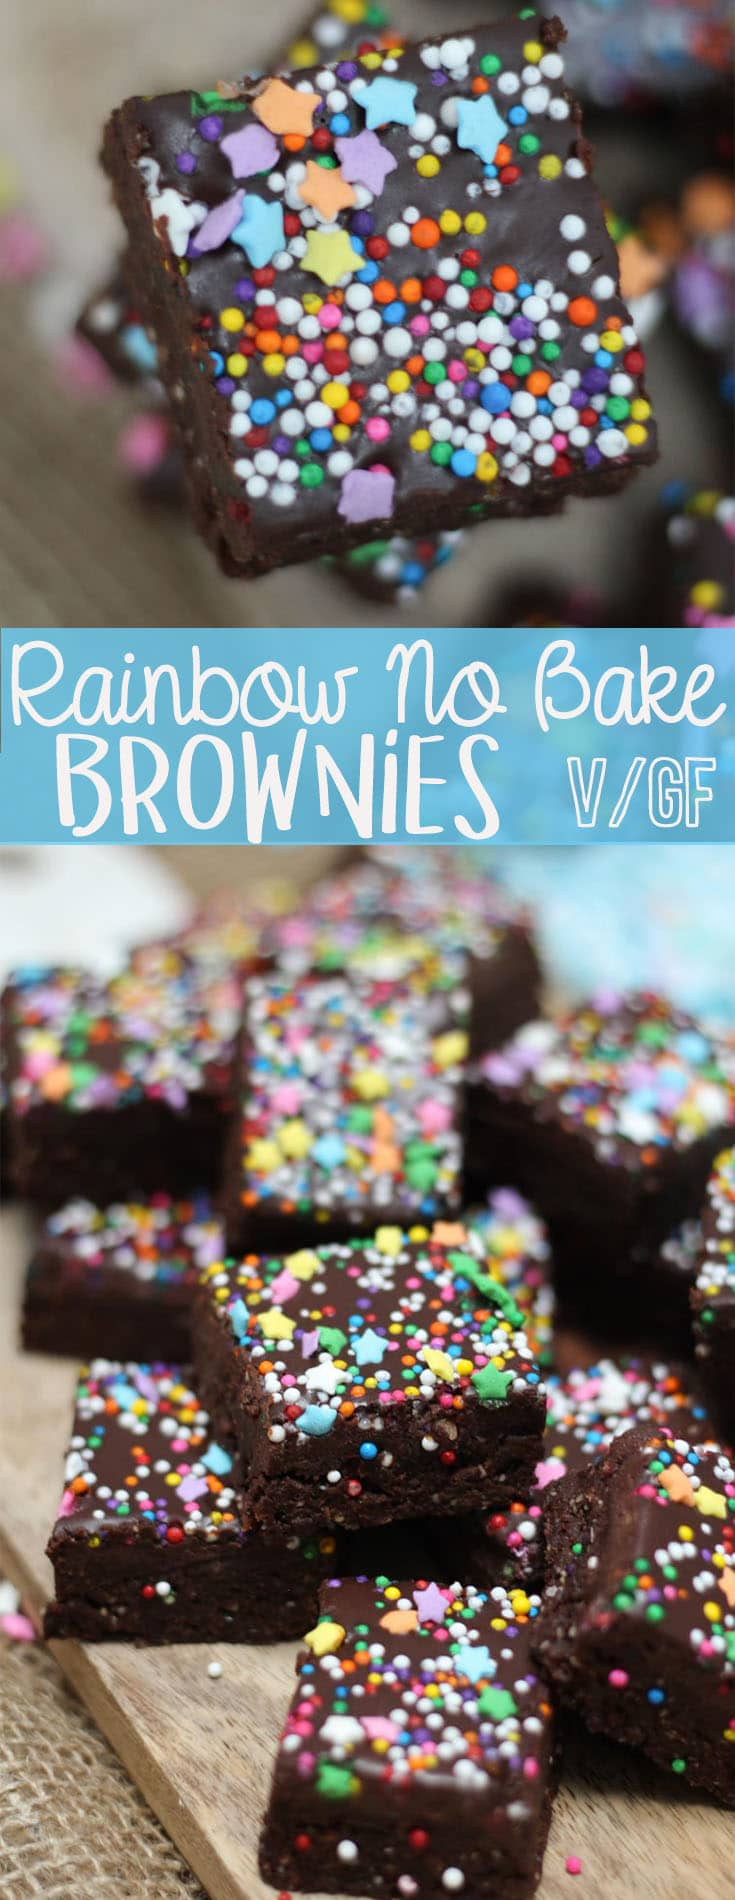 TheseRainbow No Bake Brownies are perfect Vegan and Gluten Free Desserts for getting your chocolate fix any night of the week.